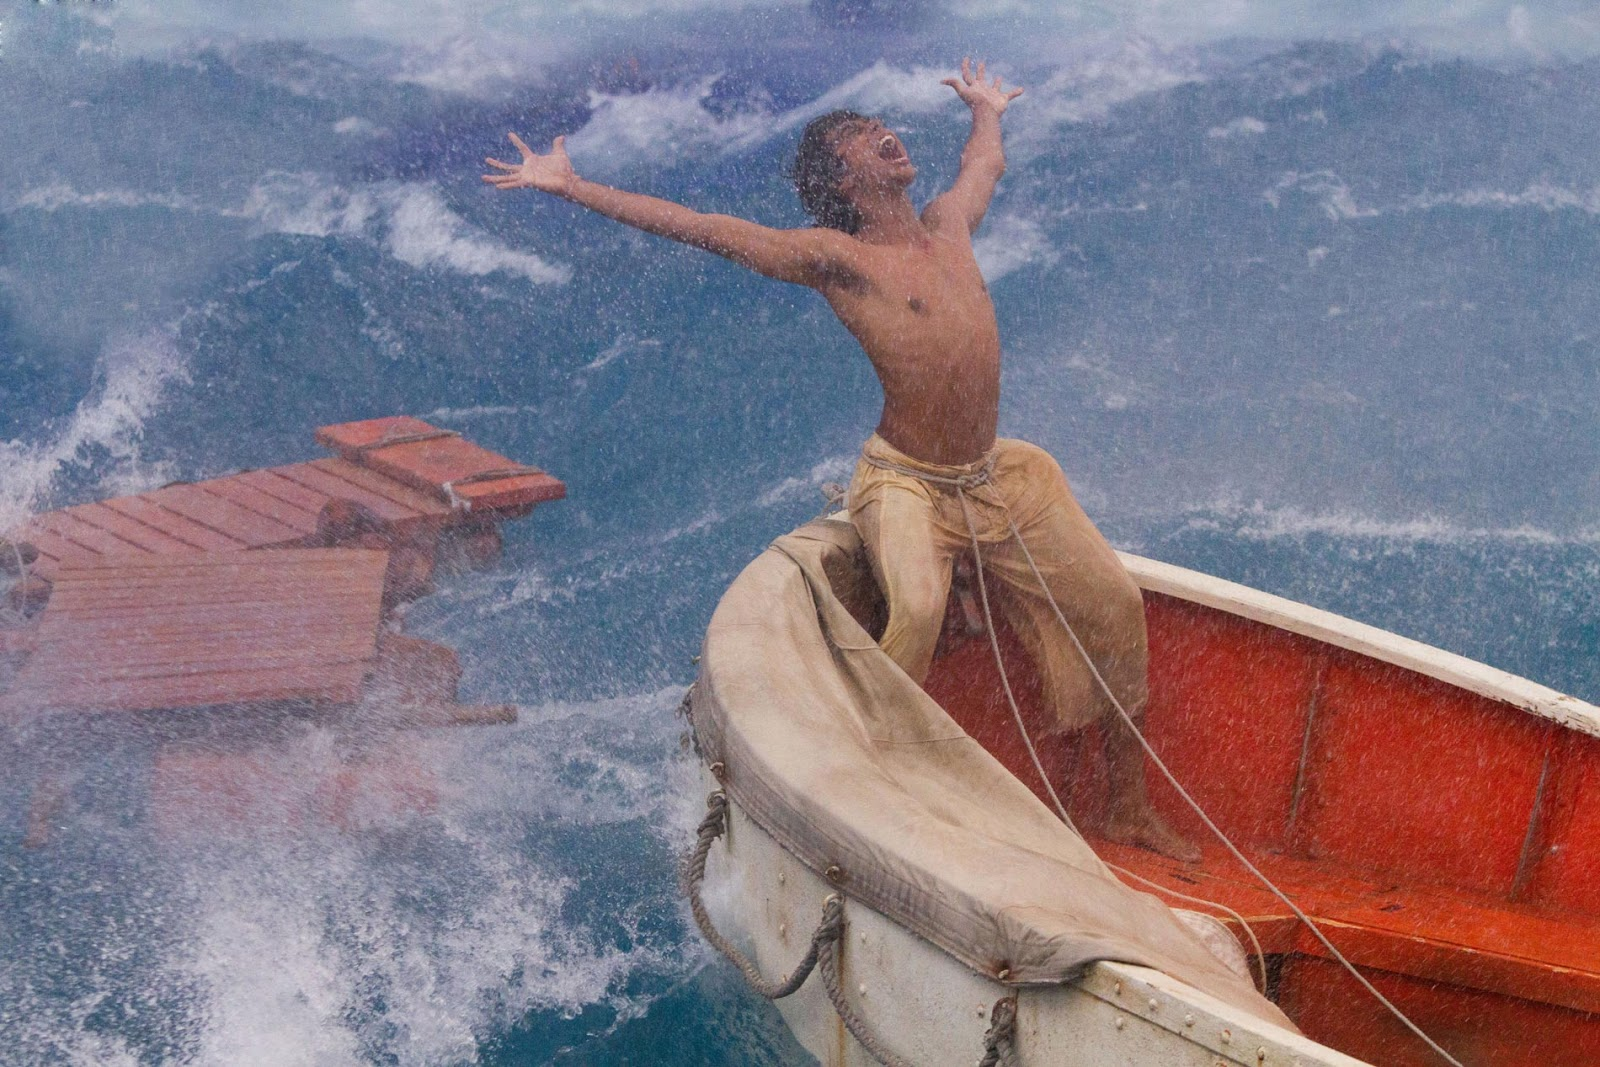 life of pi review Yann martel's life of pi is the story of a young man who survives a harrowing shipwreck and months in a lifeboat with a large bengal tiger named richard p.